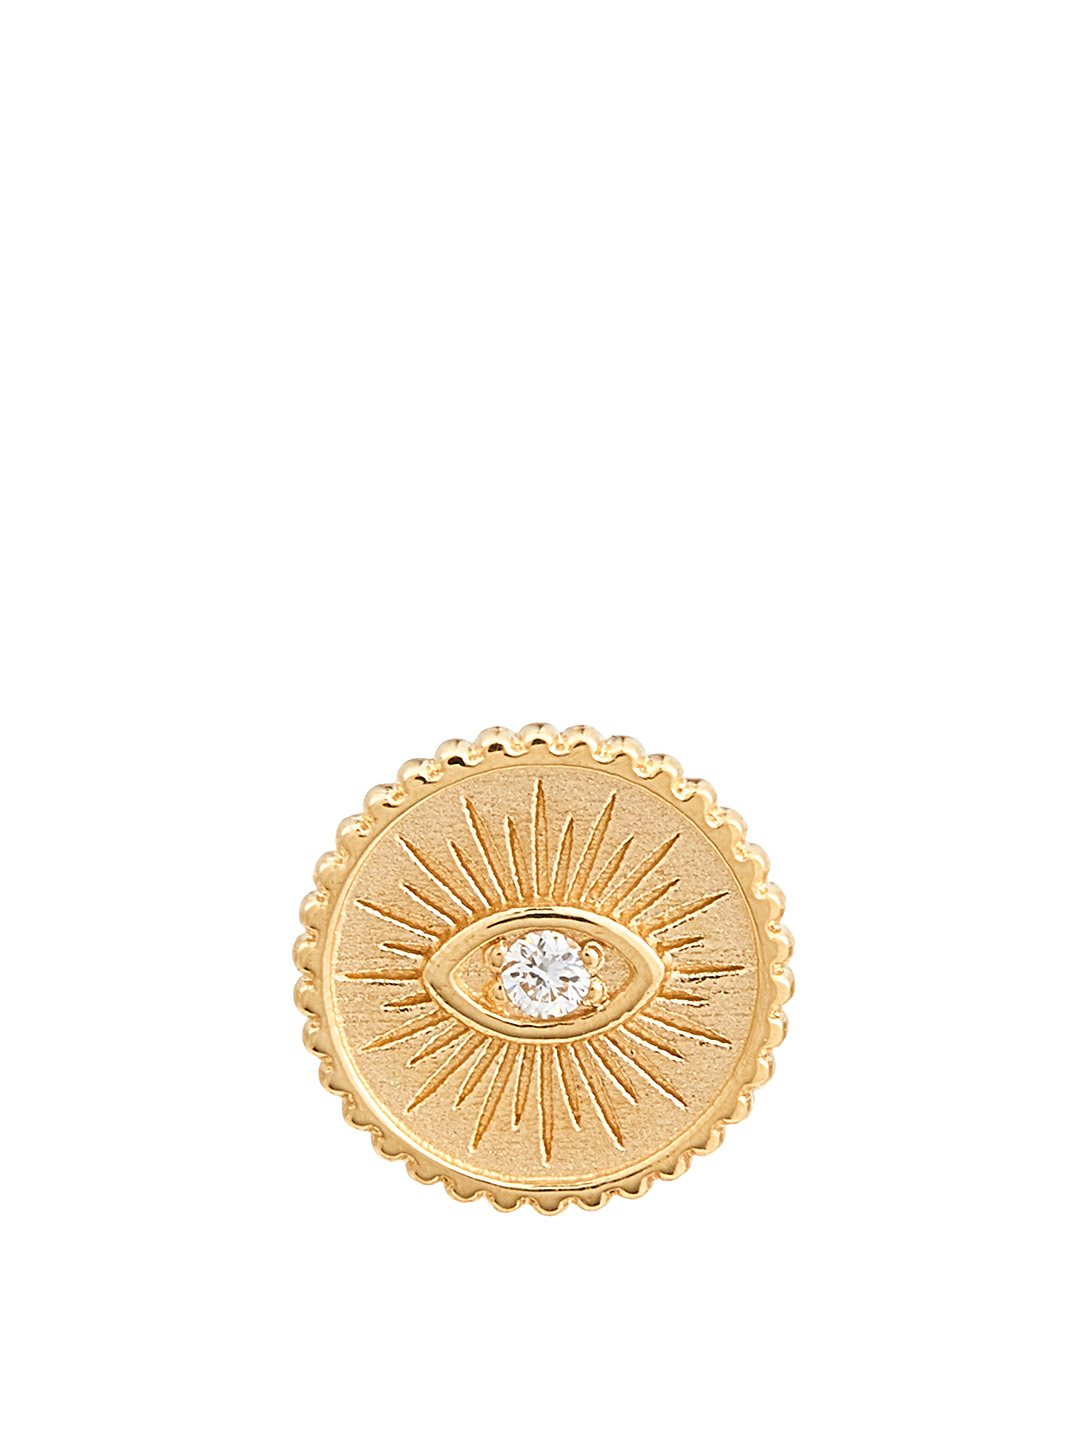 SYDNEY EVAN Small Evil Eye Coin Stud Earring With Diamond Women's Metallic